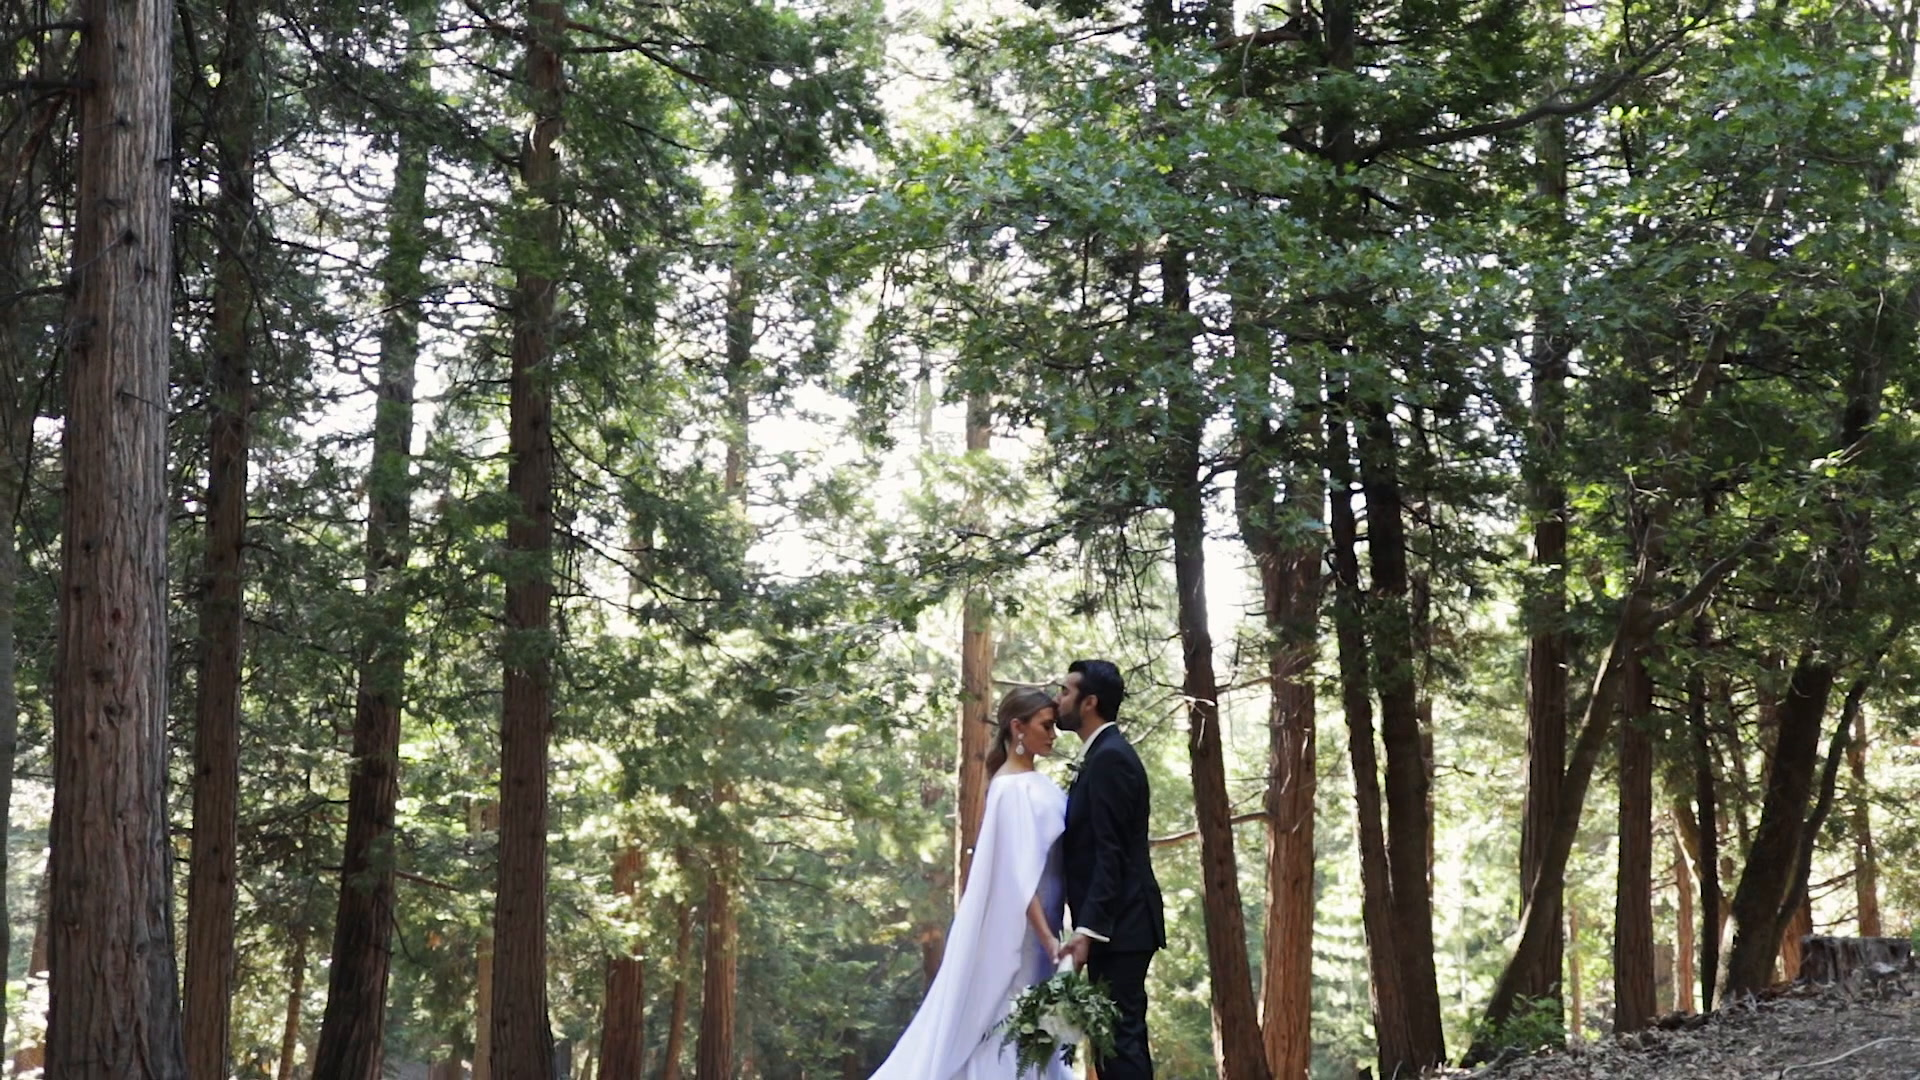 Bobbi + David | Lake Arrowhead, California | Pine rose cabins